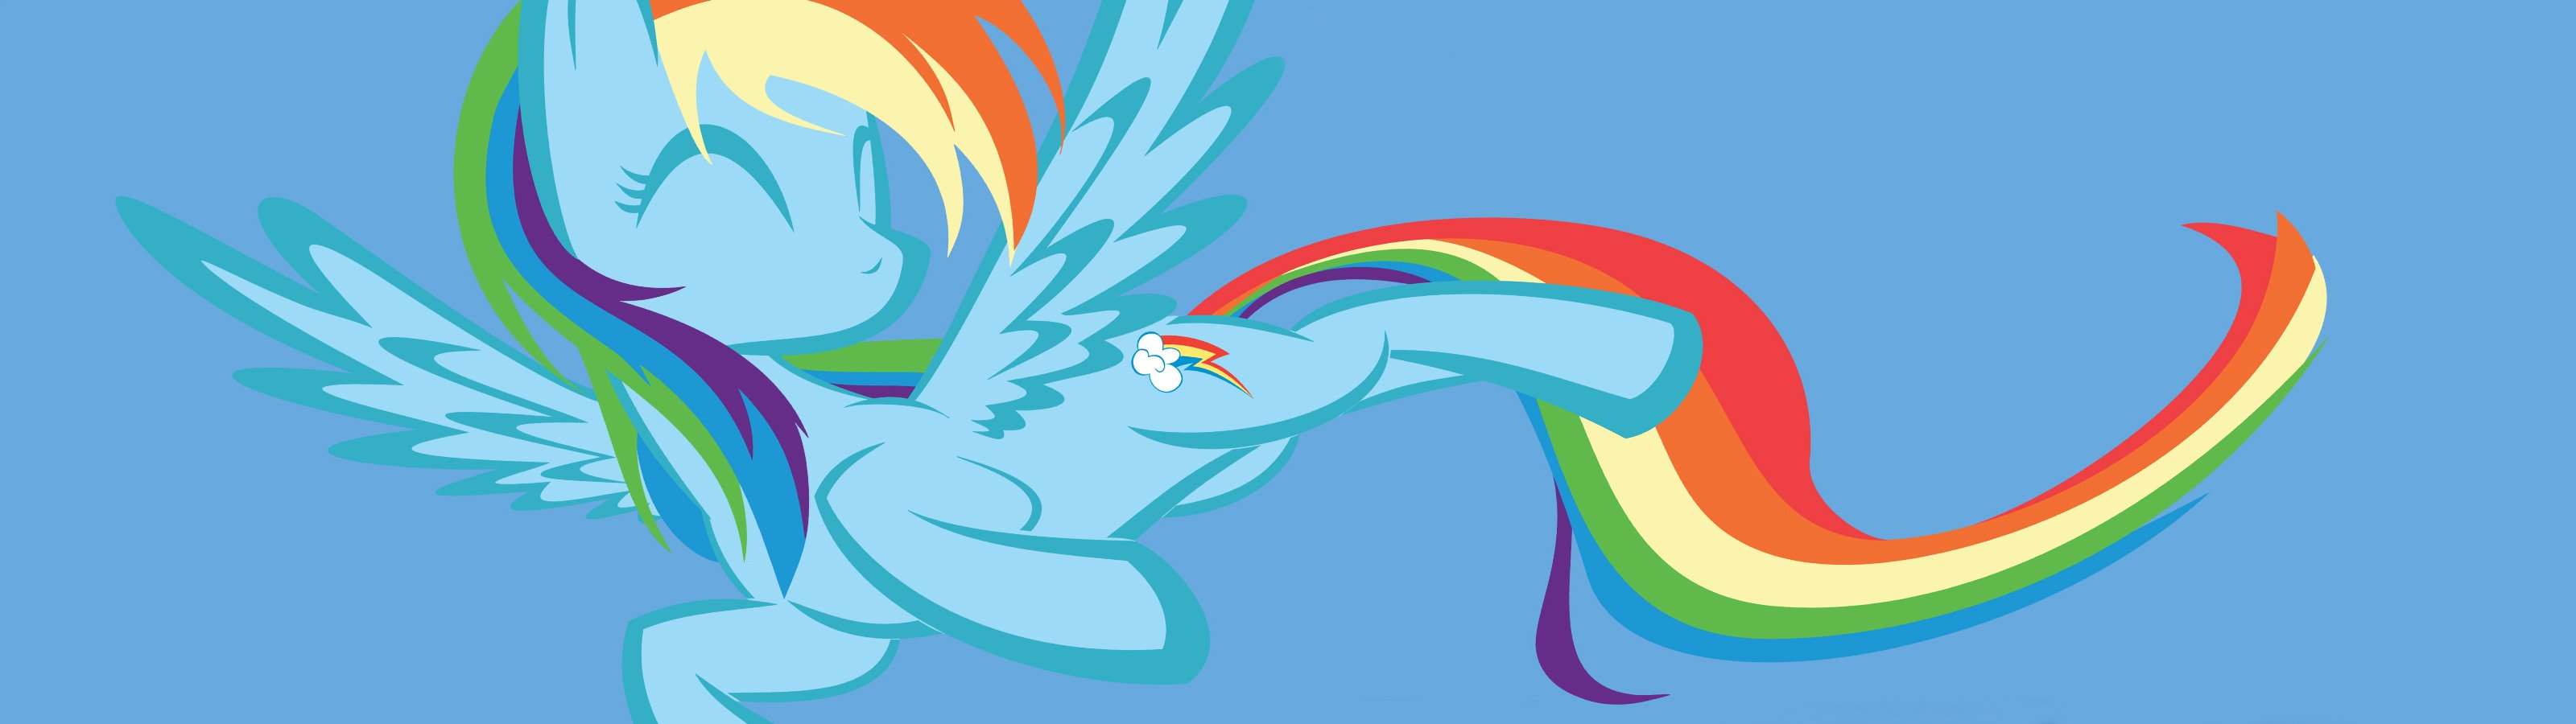 3200x900 Dual monitor My Little Pony (MLP) wallpapers, HD backgrounds